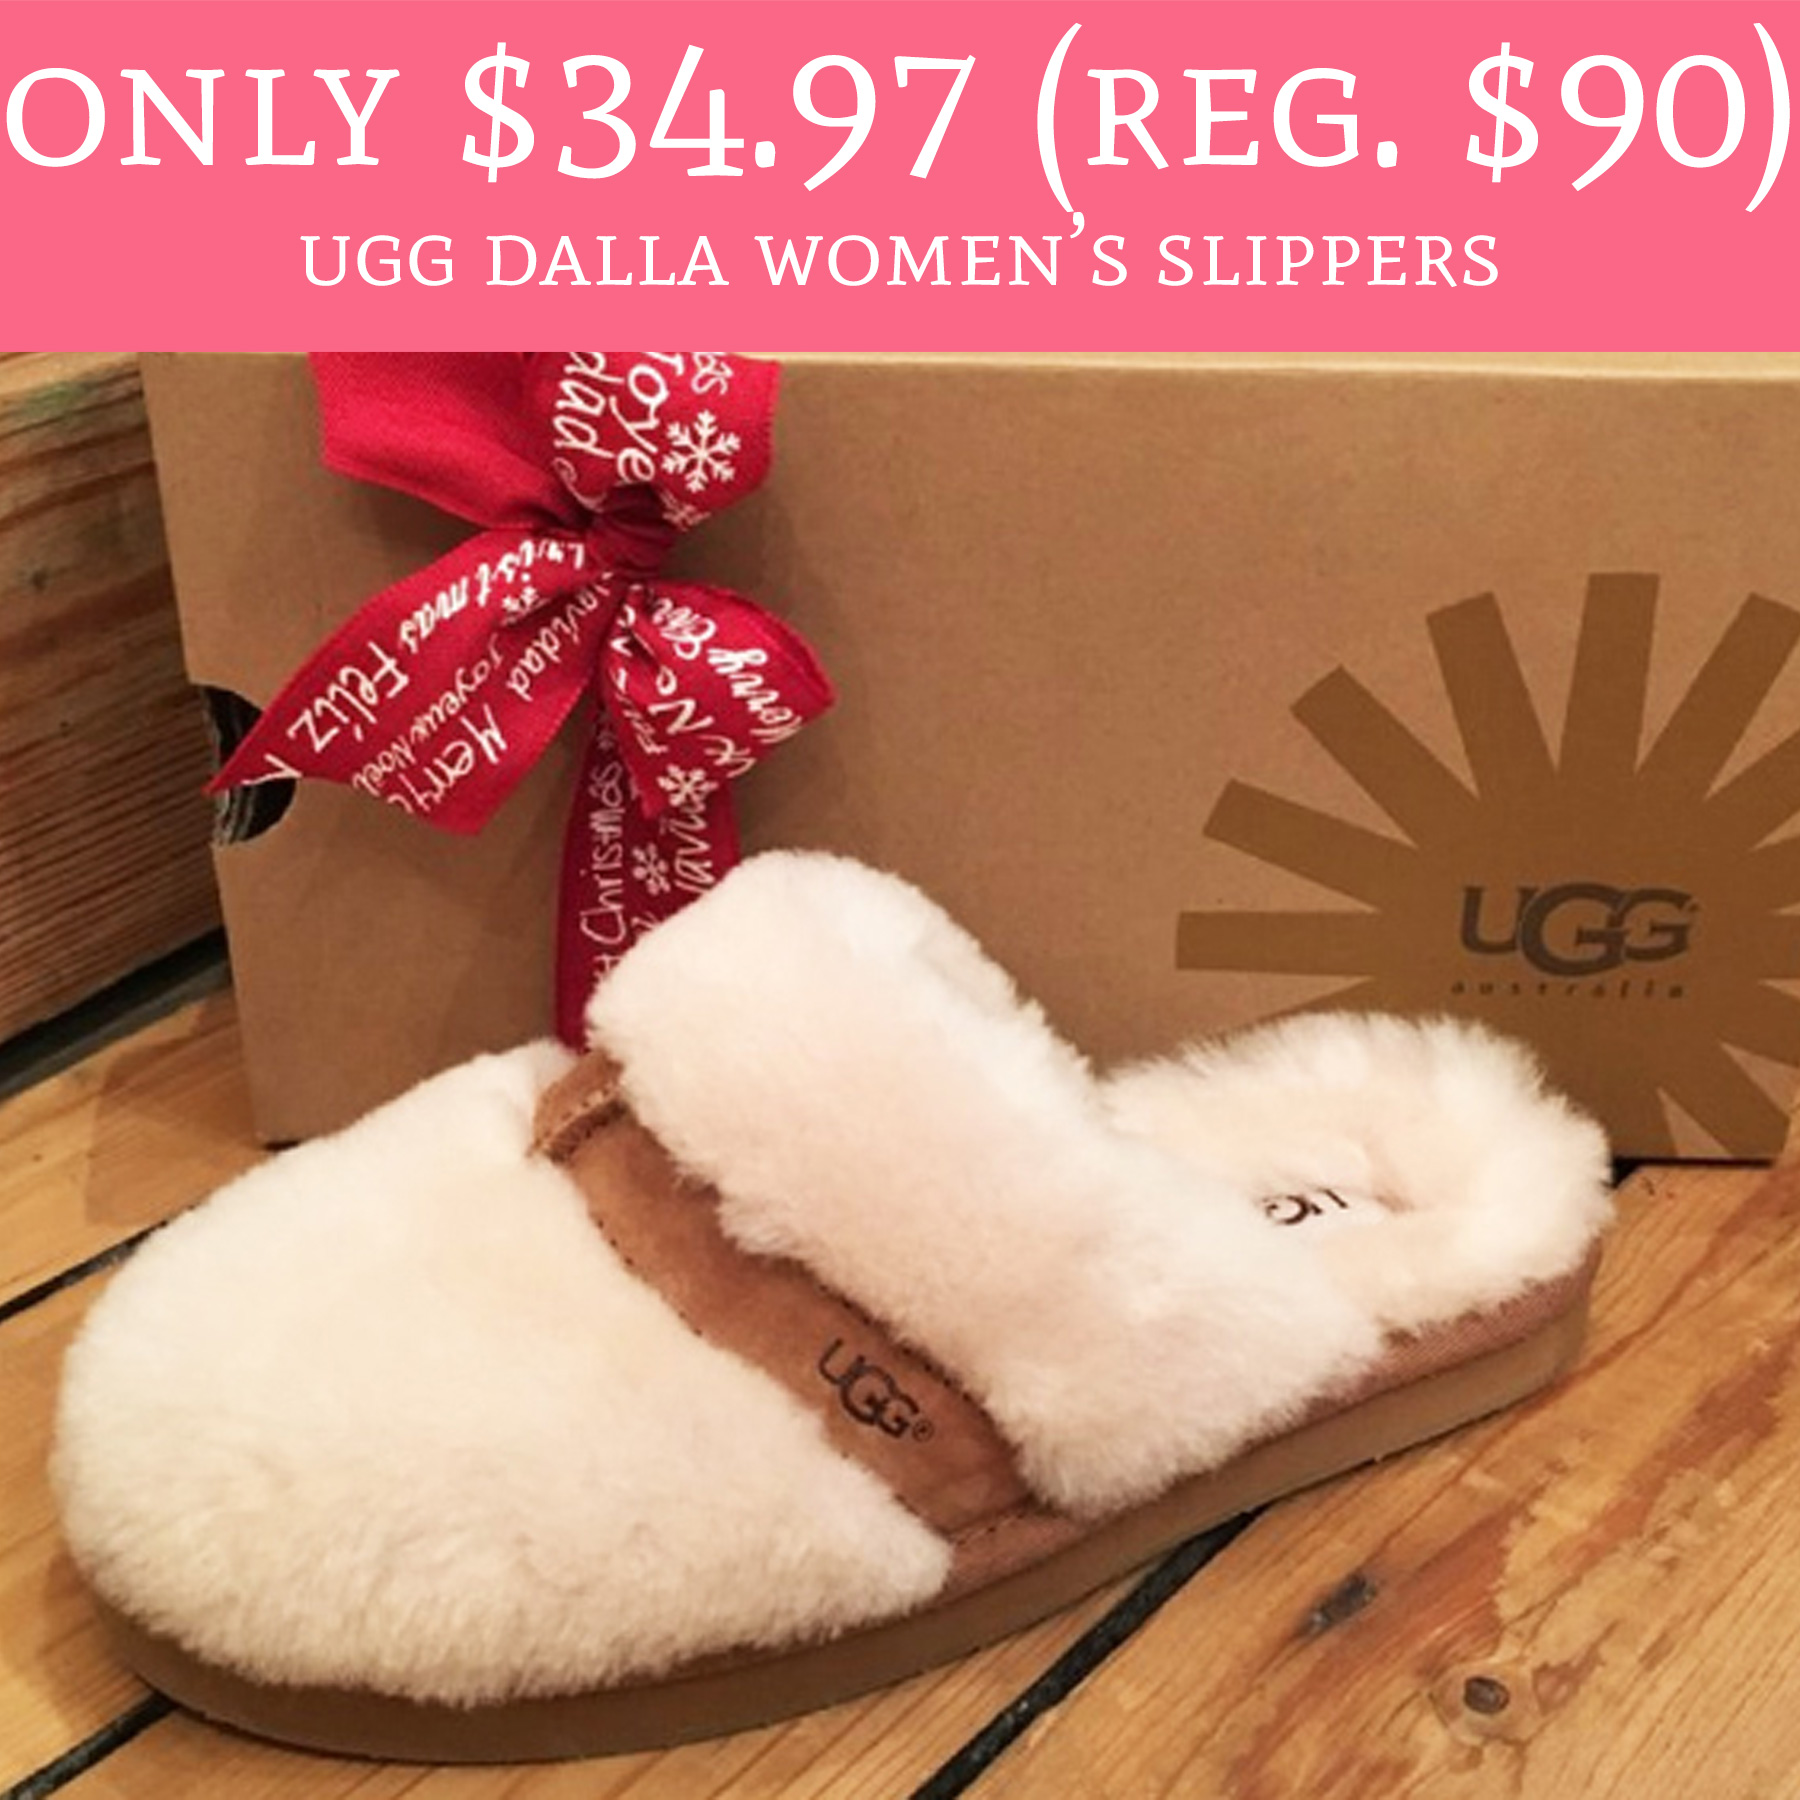 2c8b3e2f6b8 Only $34.97 (Regular $90) Ugg Dalla Women's Slippers - Deal Hunting Babe